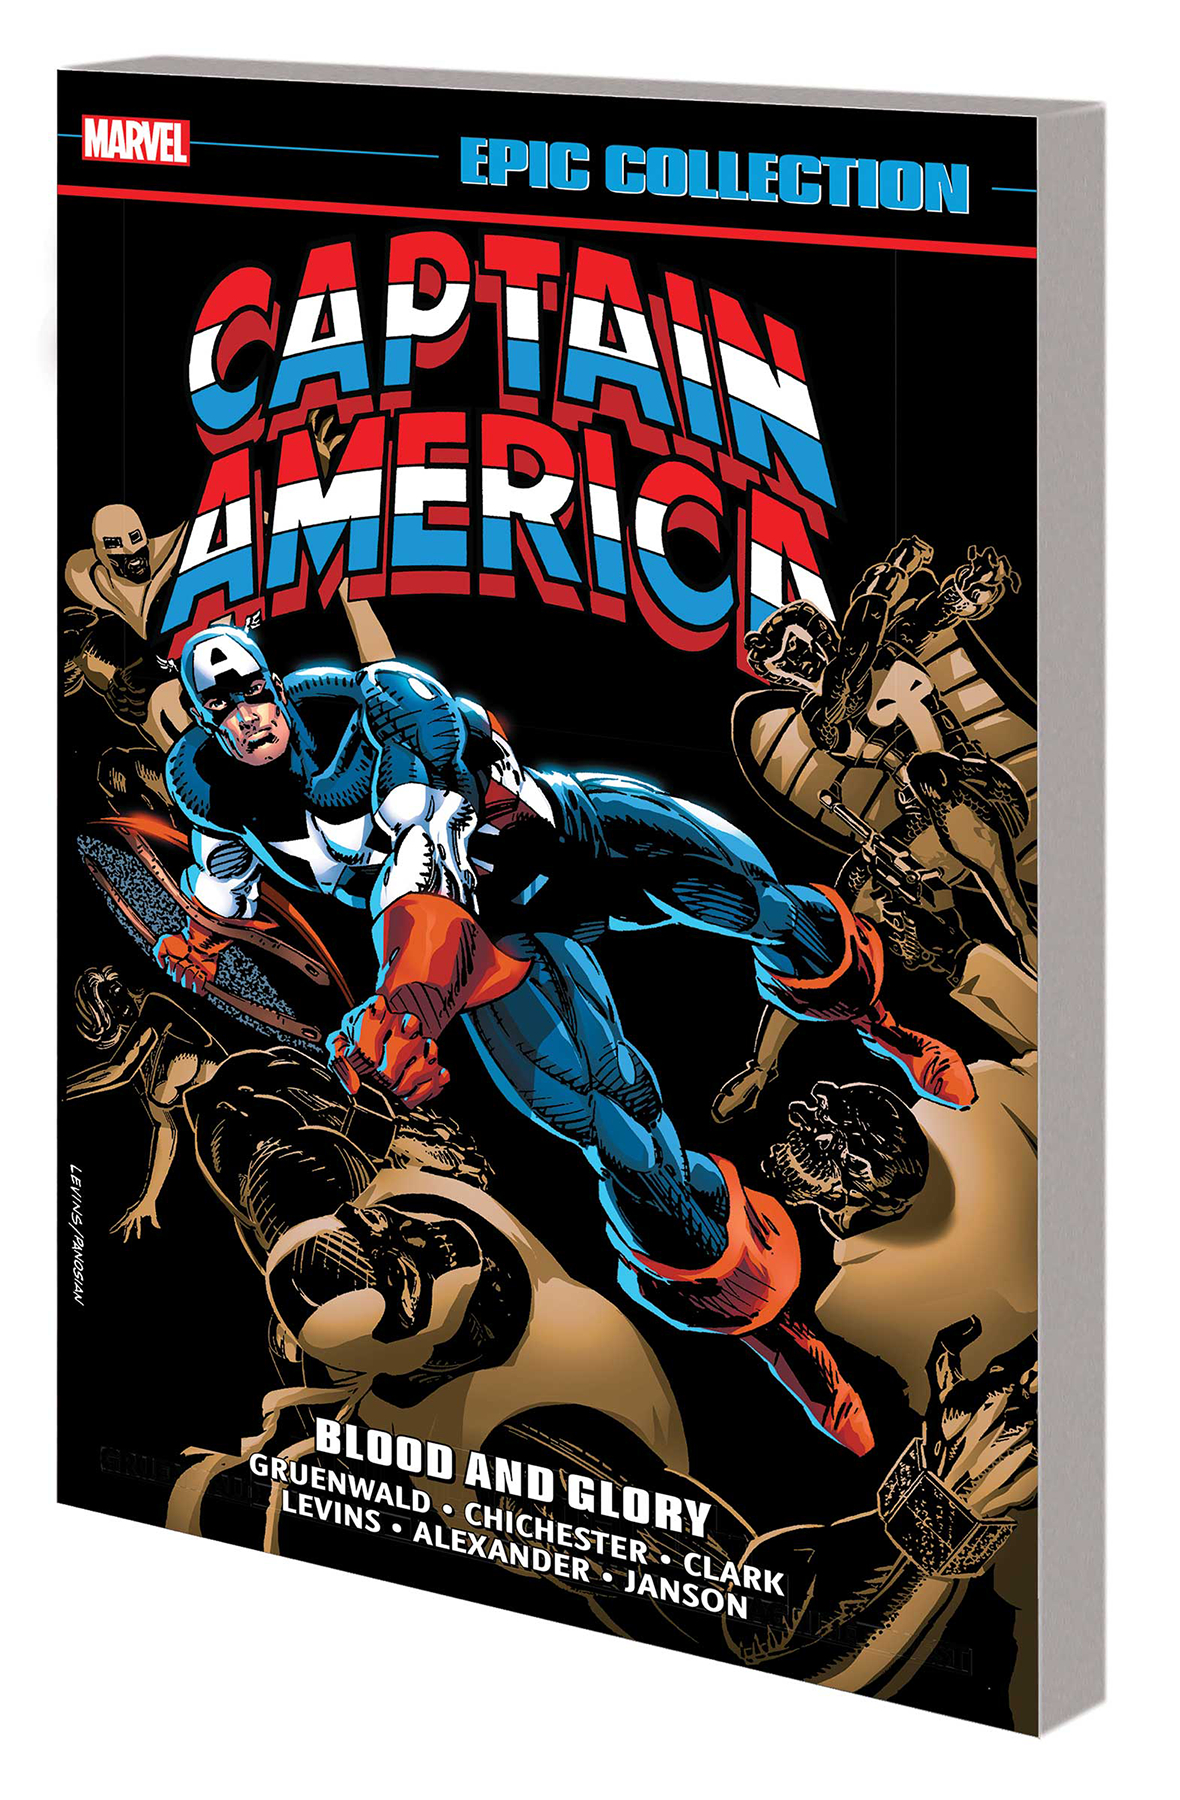 CAPTAIN AMERICA EPIC COLLECTION (18) TP BLOOD GLORY [#398-410+]